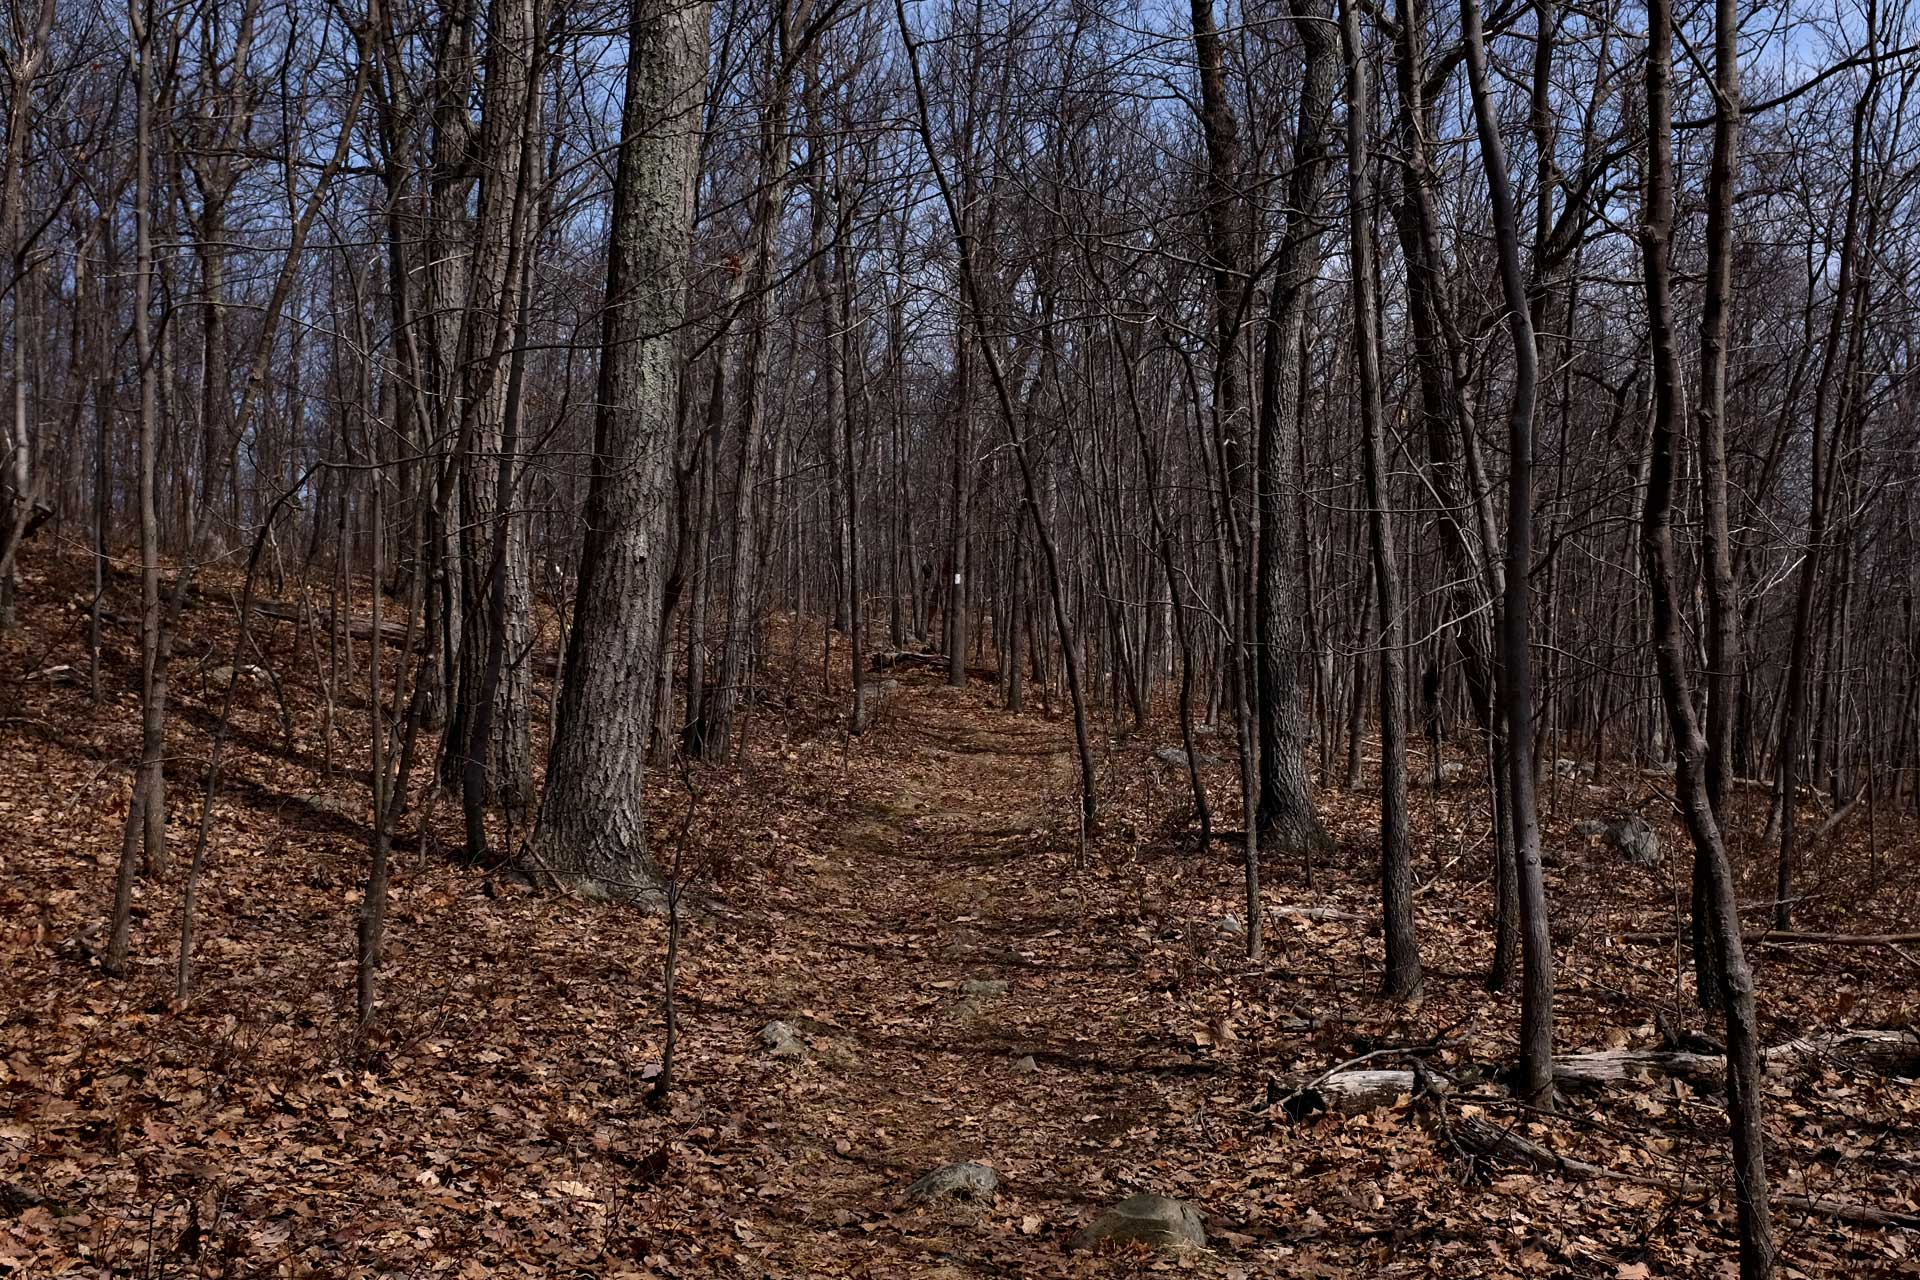 Photograph: A forest scene; hundreds of skinny trees, devoid of leaves, line a central trail. In the distance, a small vertical white stripe has been painted about six feet up one tree's trunk.